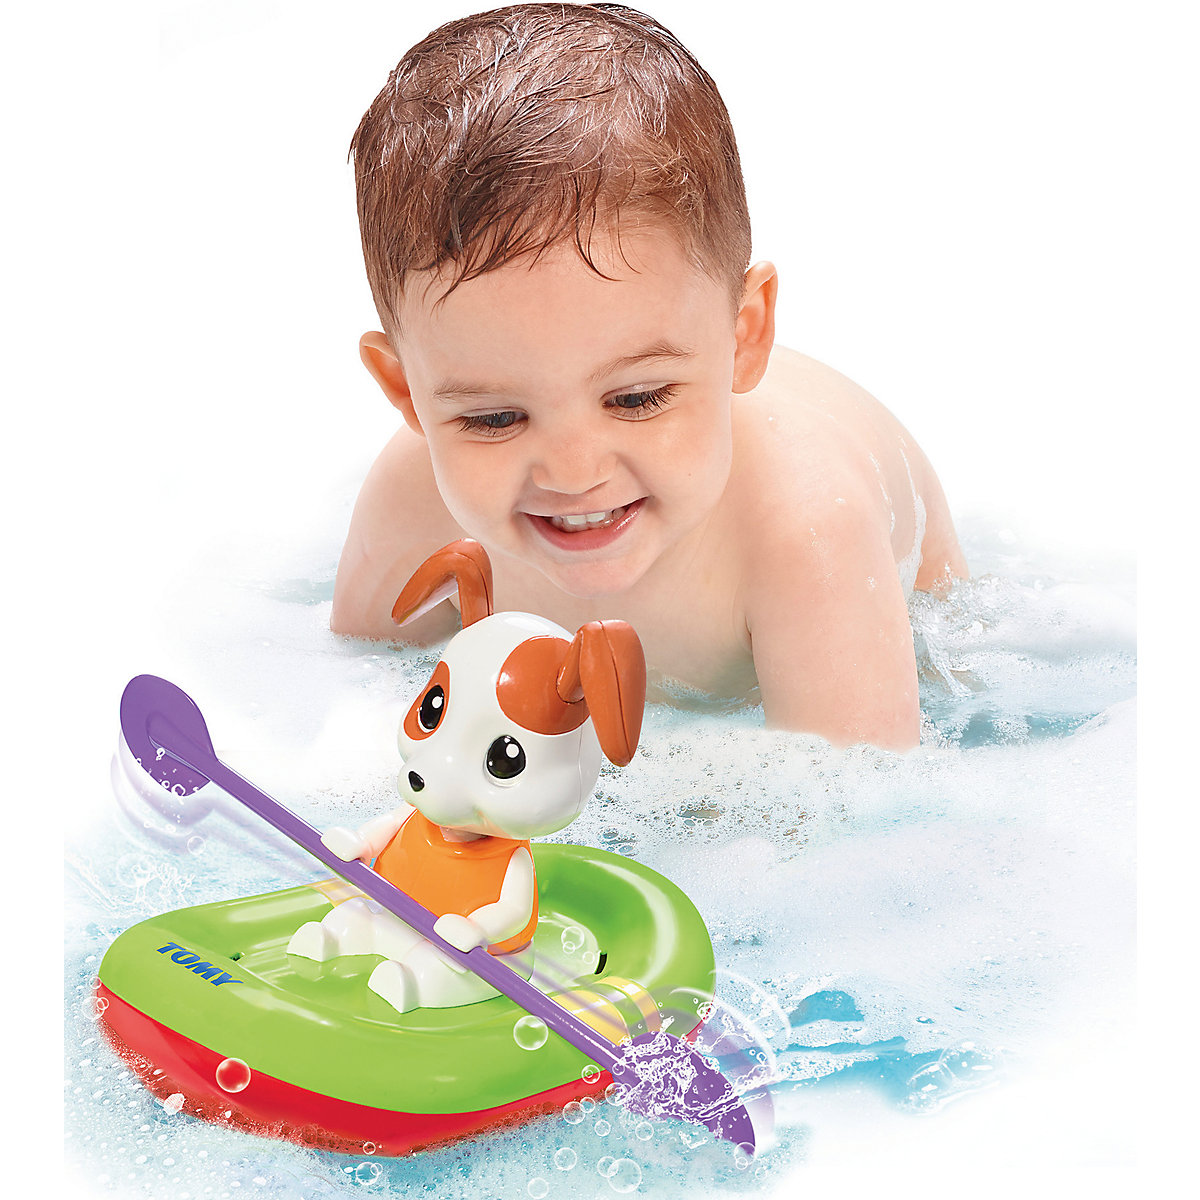 Bath Toy TOMY 4599020 Bathing Bath toys for bathroom on suckers Rubber Duck Doll Kids bath toy tomy 4599020 bathing bath toys for bathroom on suckers rubber duck doll kids